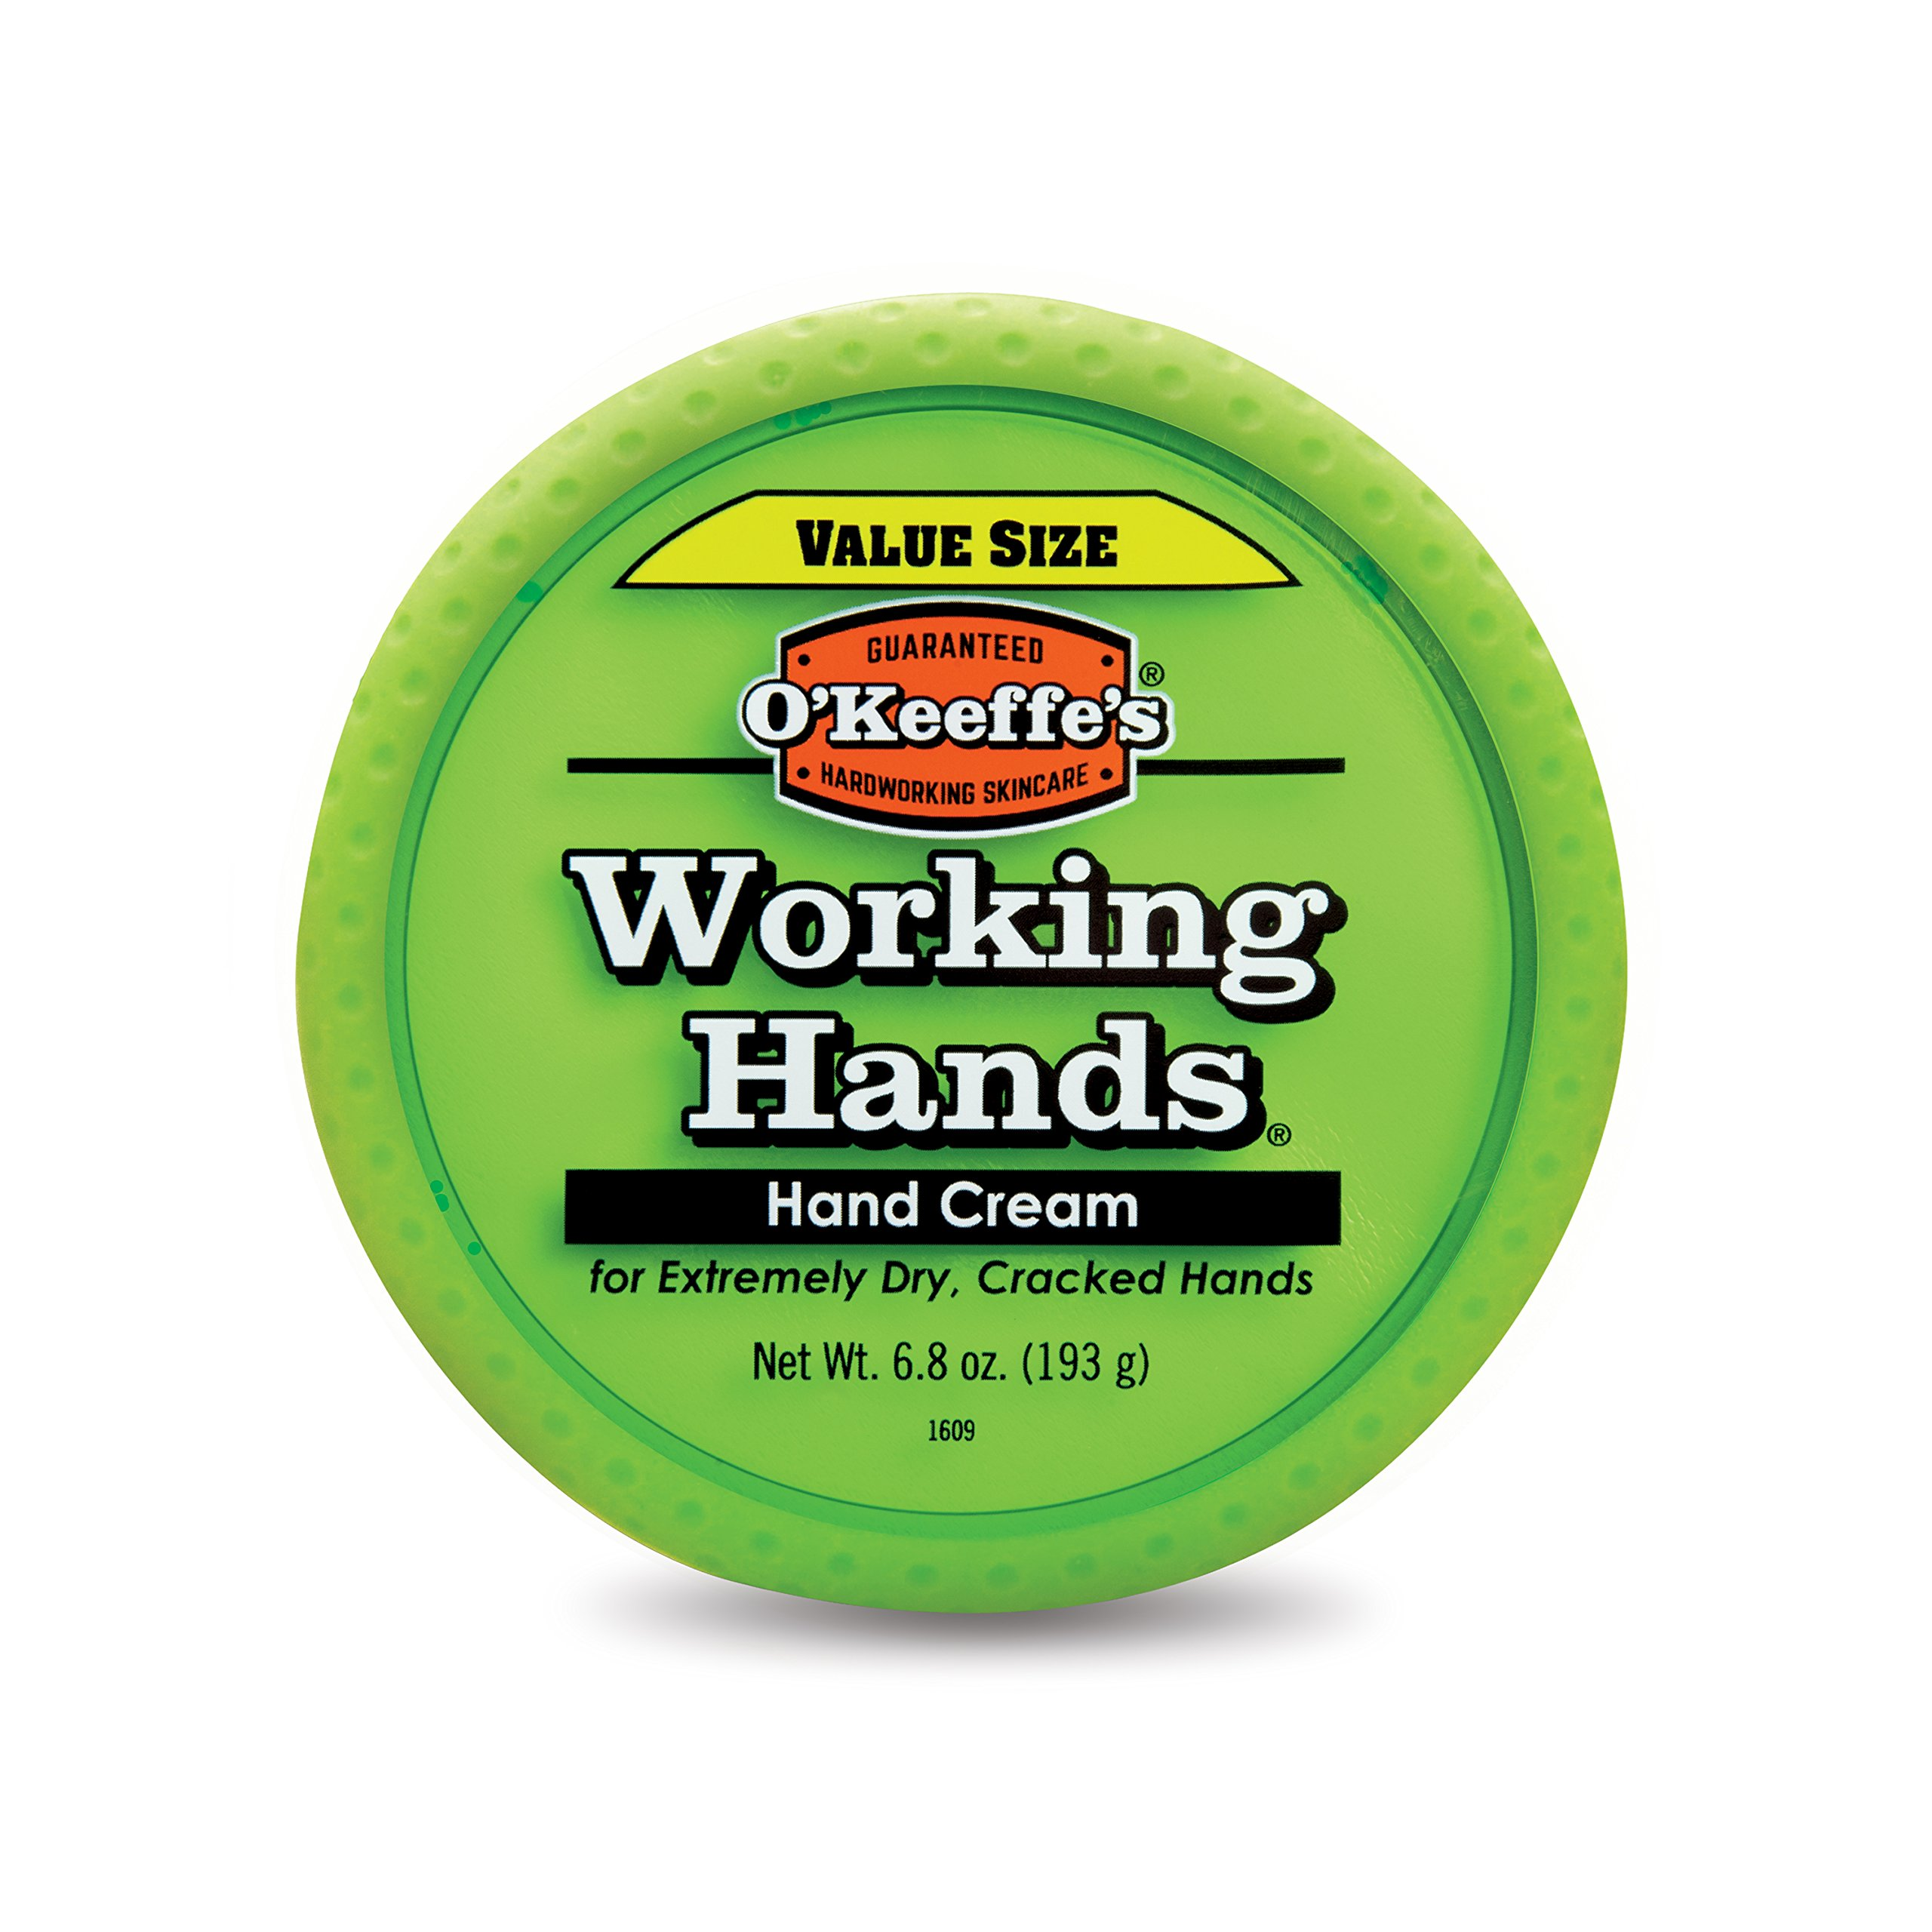 O'Keeffe's Working Hands Hand Cream Value Size, 6.8 ounce Jar